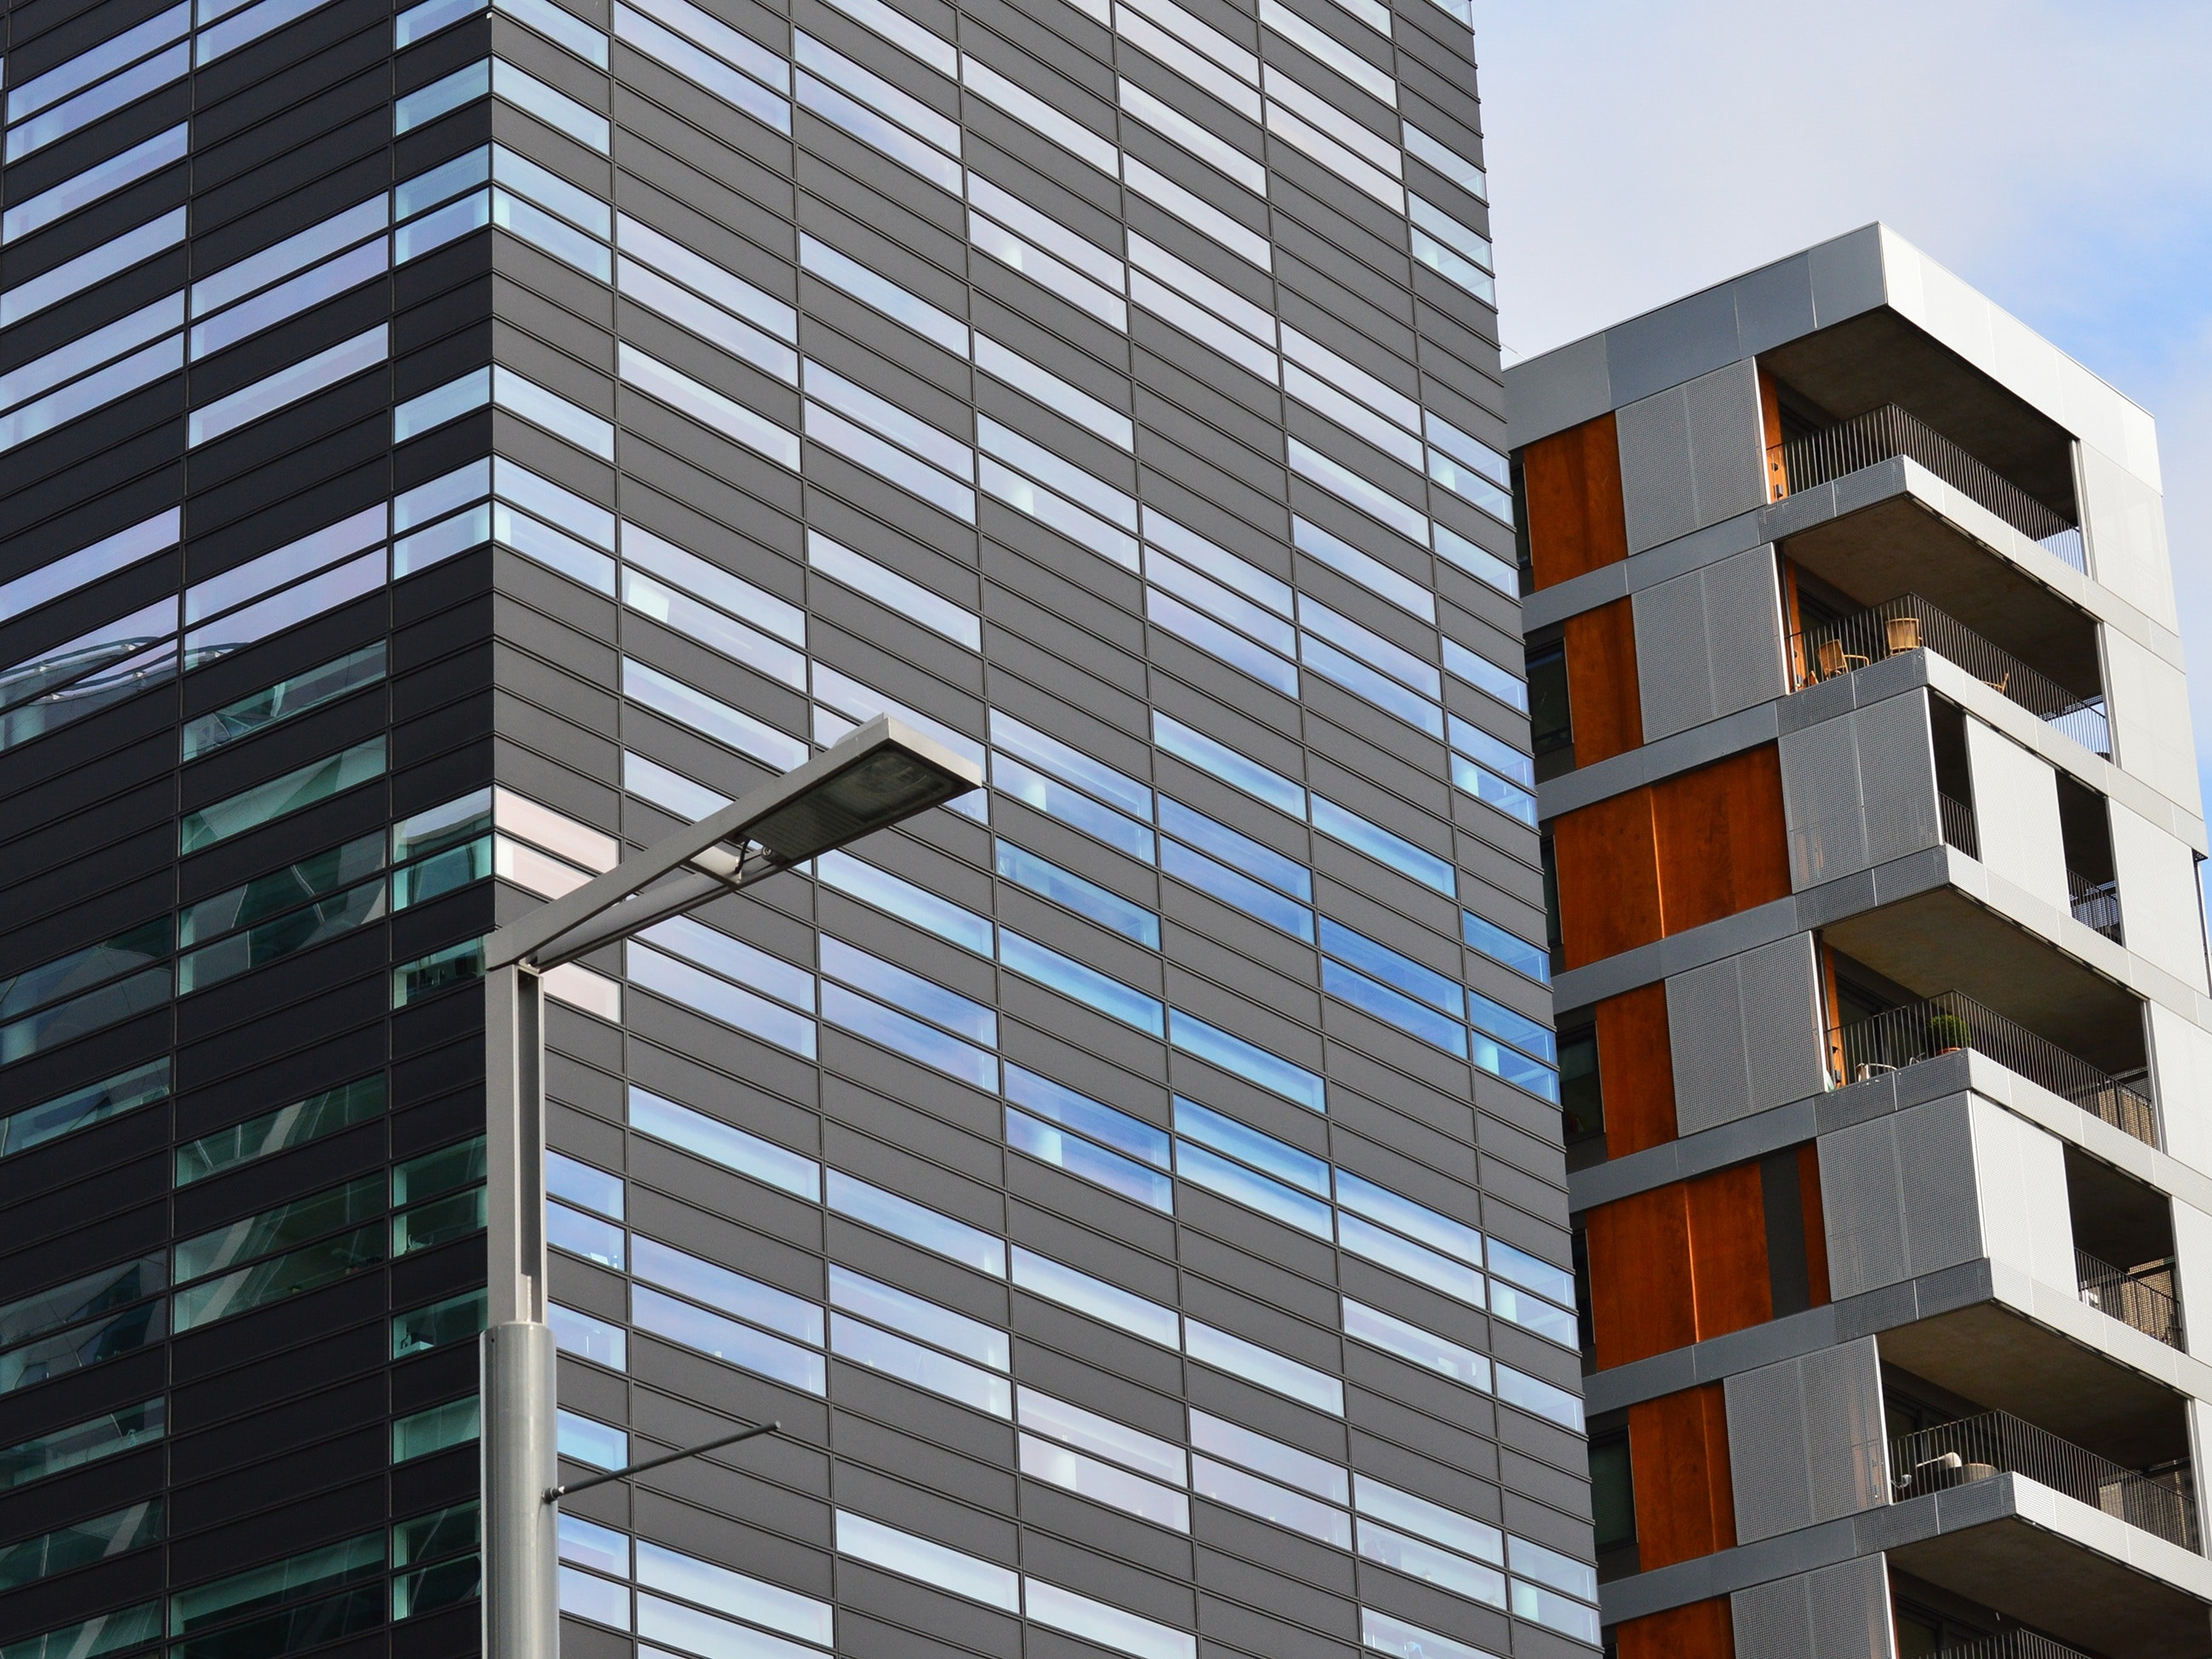 architecture-business-center-commercial-273244.jpg